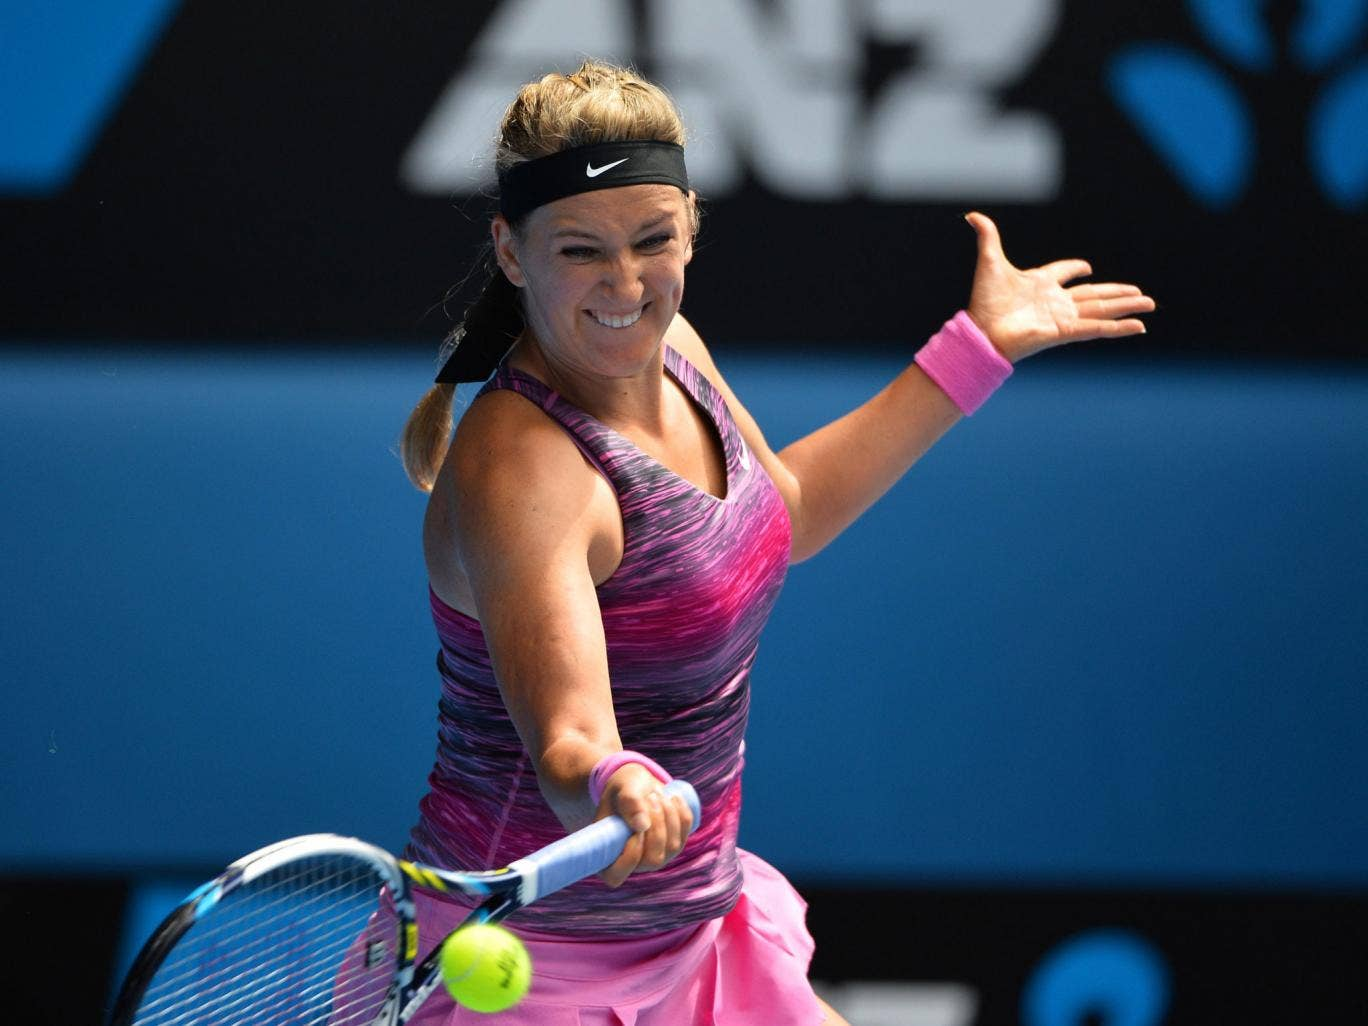 Victoria Azarenka breezed past Sloane Stephens in the Australian Open fourth round